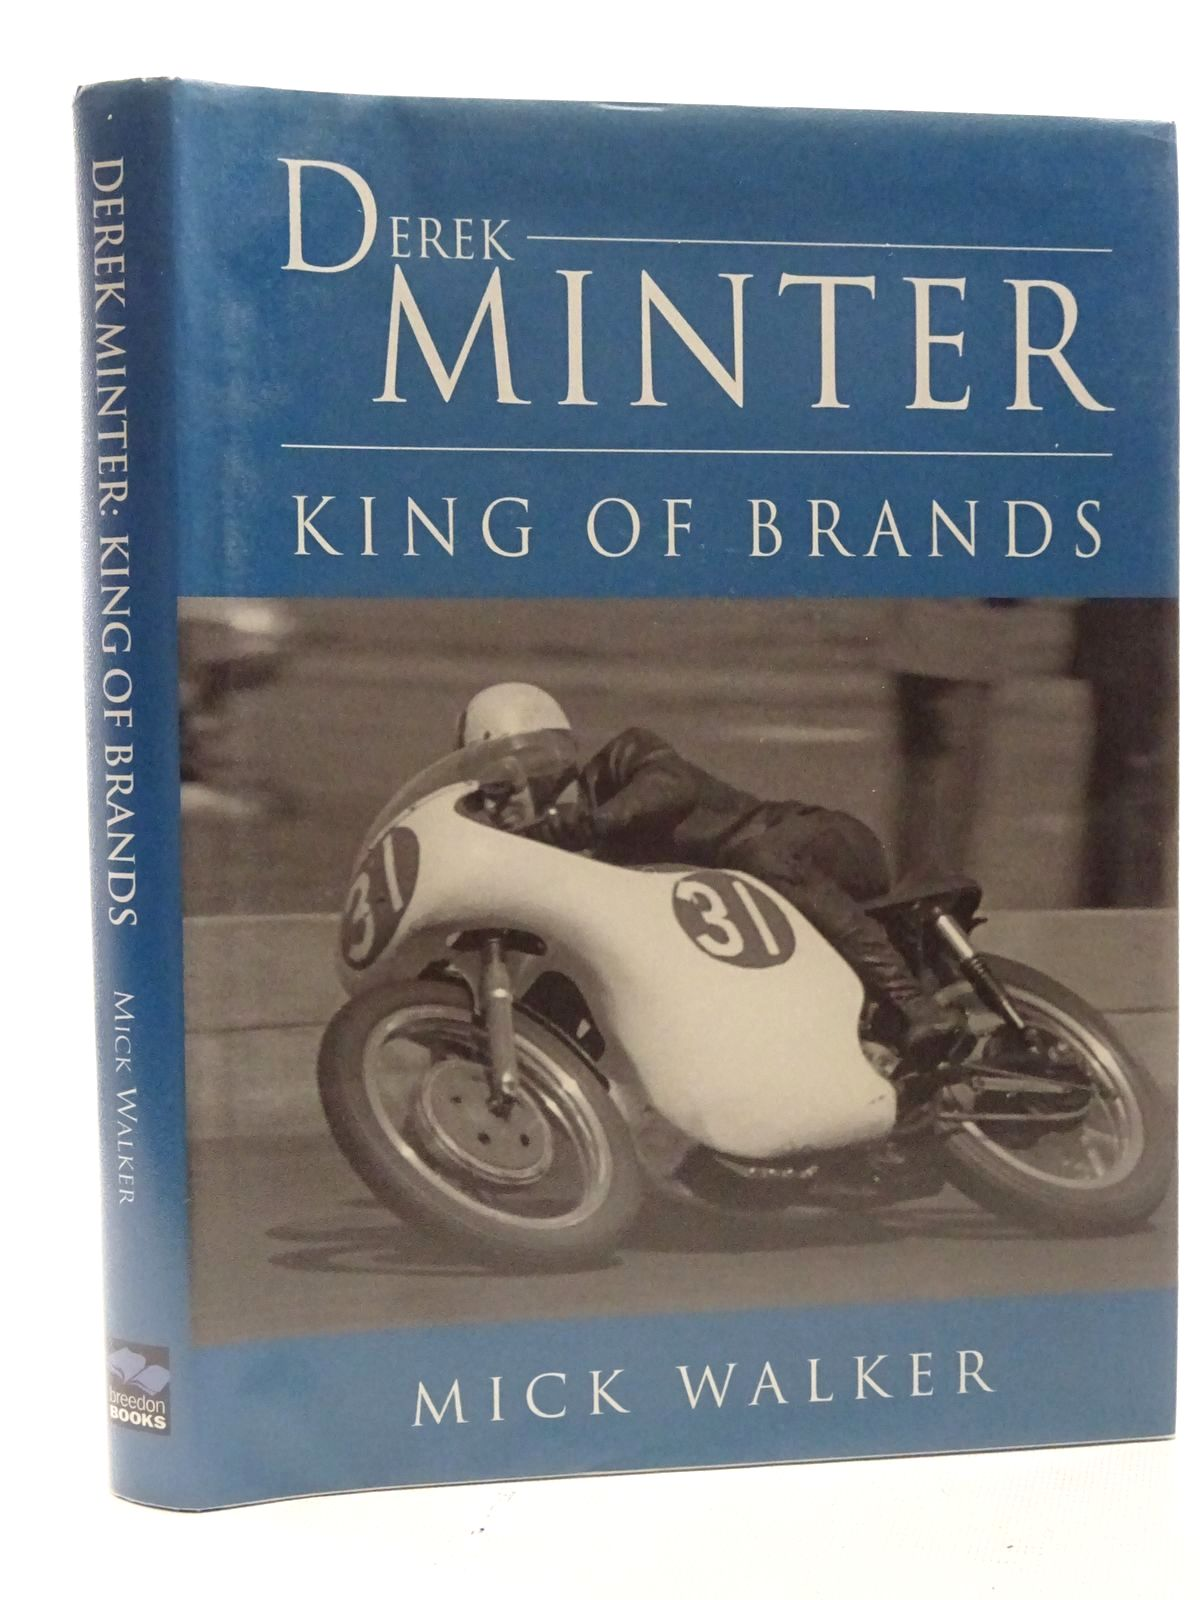 Photo of DEREK MINTER KING OF BRANDS written by Walker, Mick published by Breedon Books Publishing Co. (STOCK CODE: 1610572)  for sale by Stella & Rose's Books